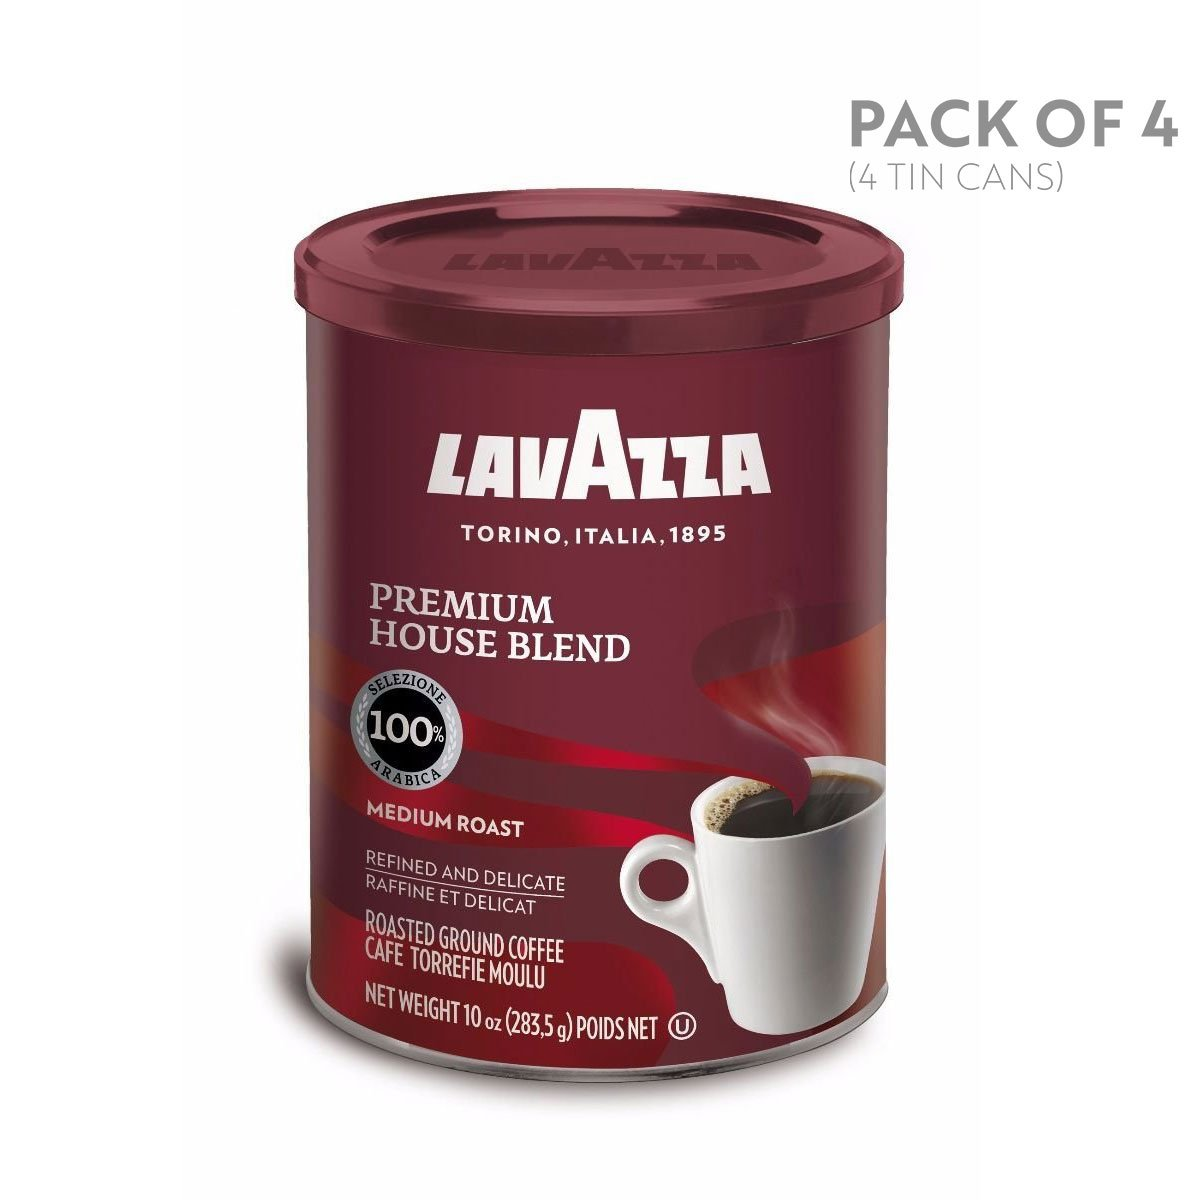 Lavazza Premium House Blend Ground Coffee, Medium Roast, 10-Ounce Cans (Pack of 4)